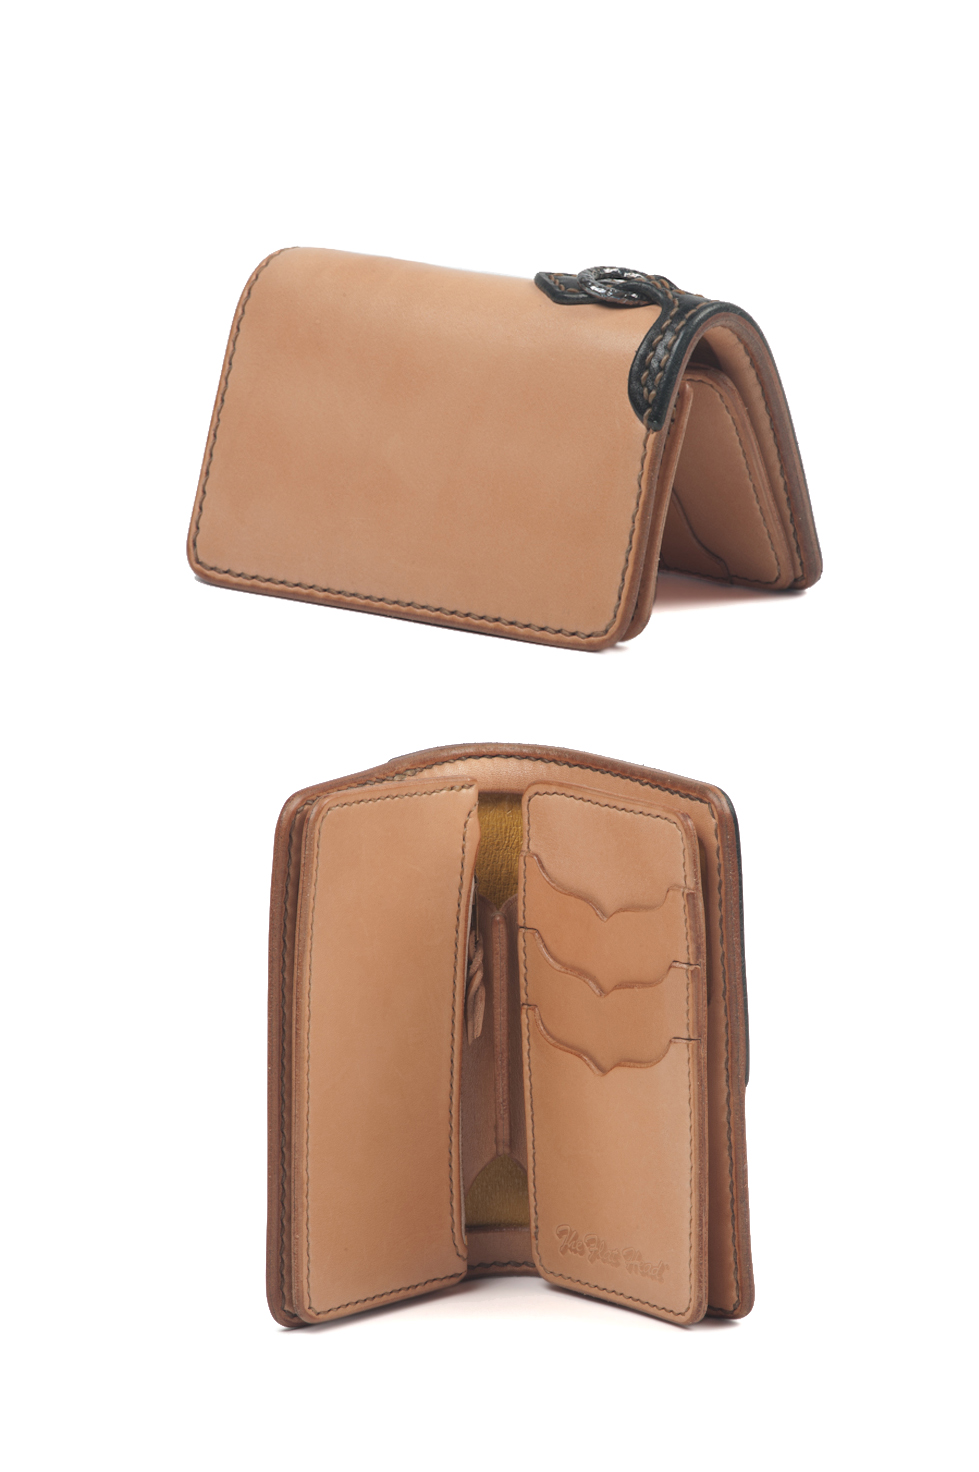 FH_WALLET_TAN_00-979x1472.jpg